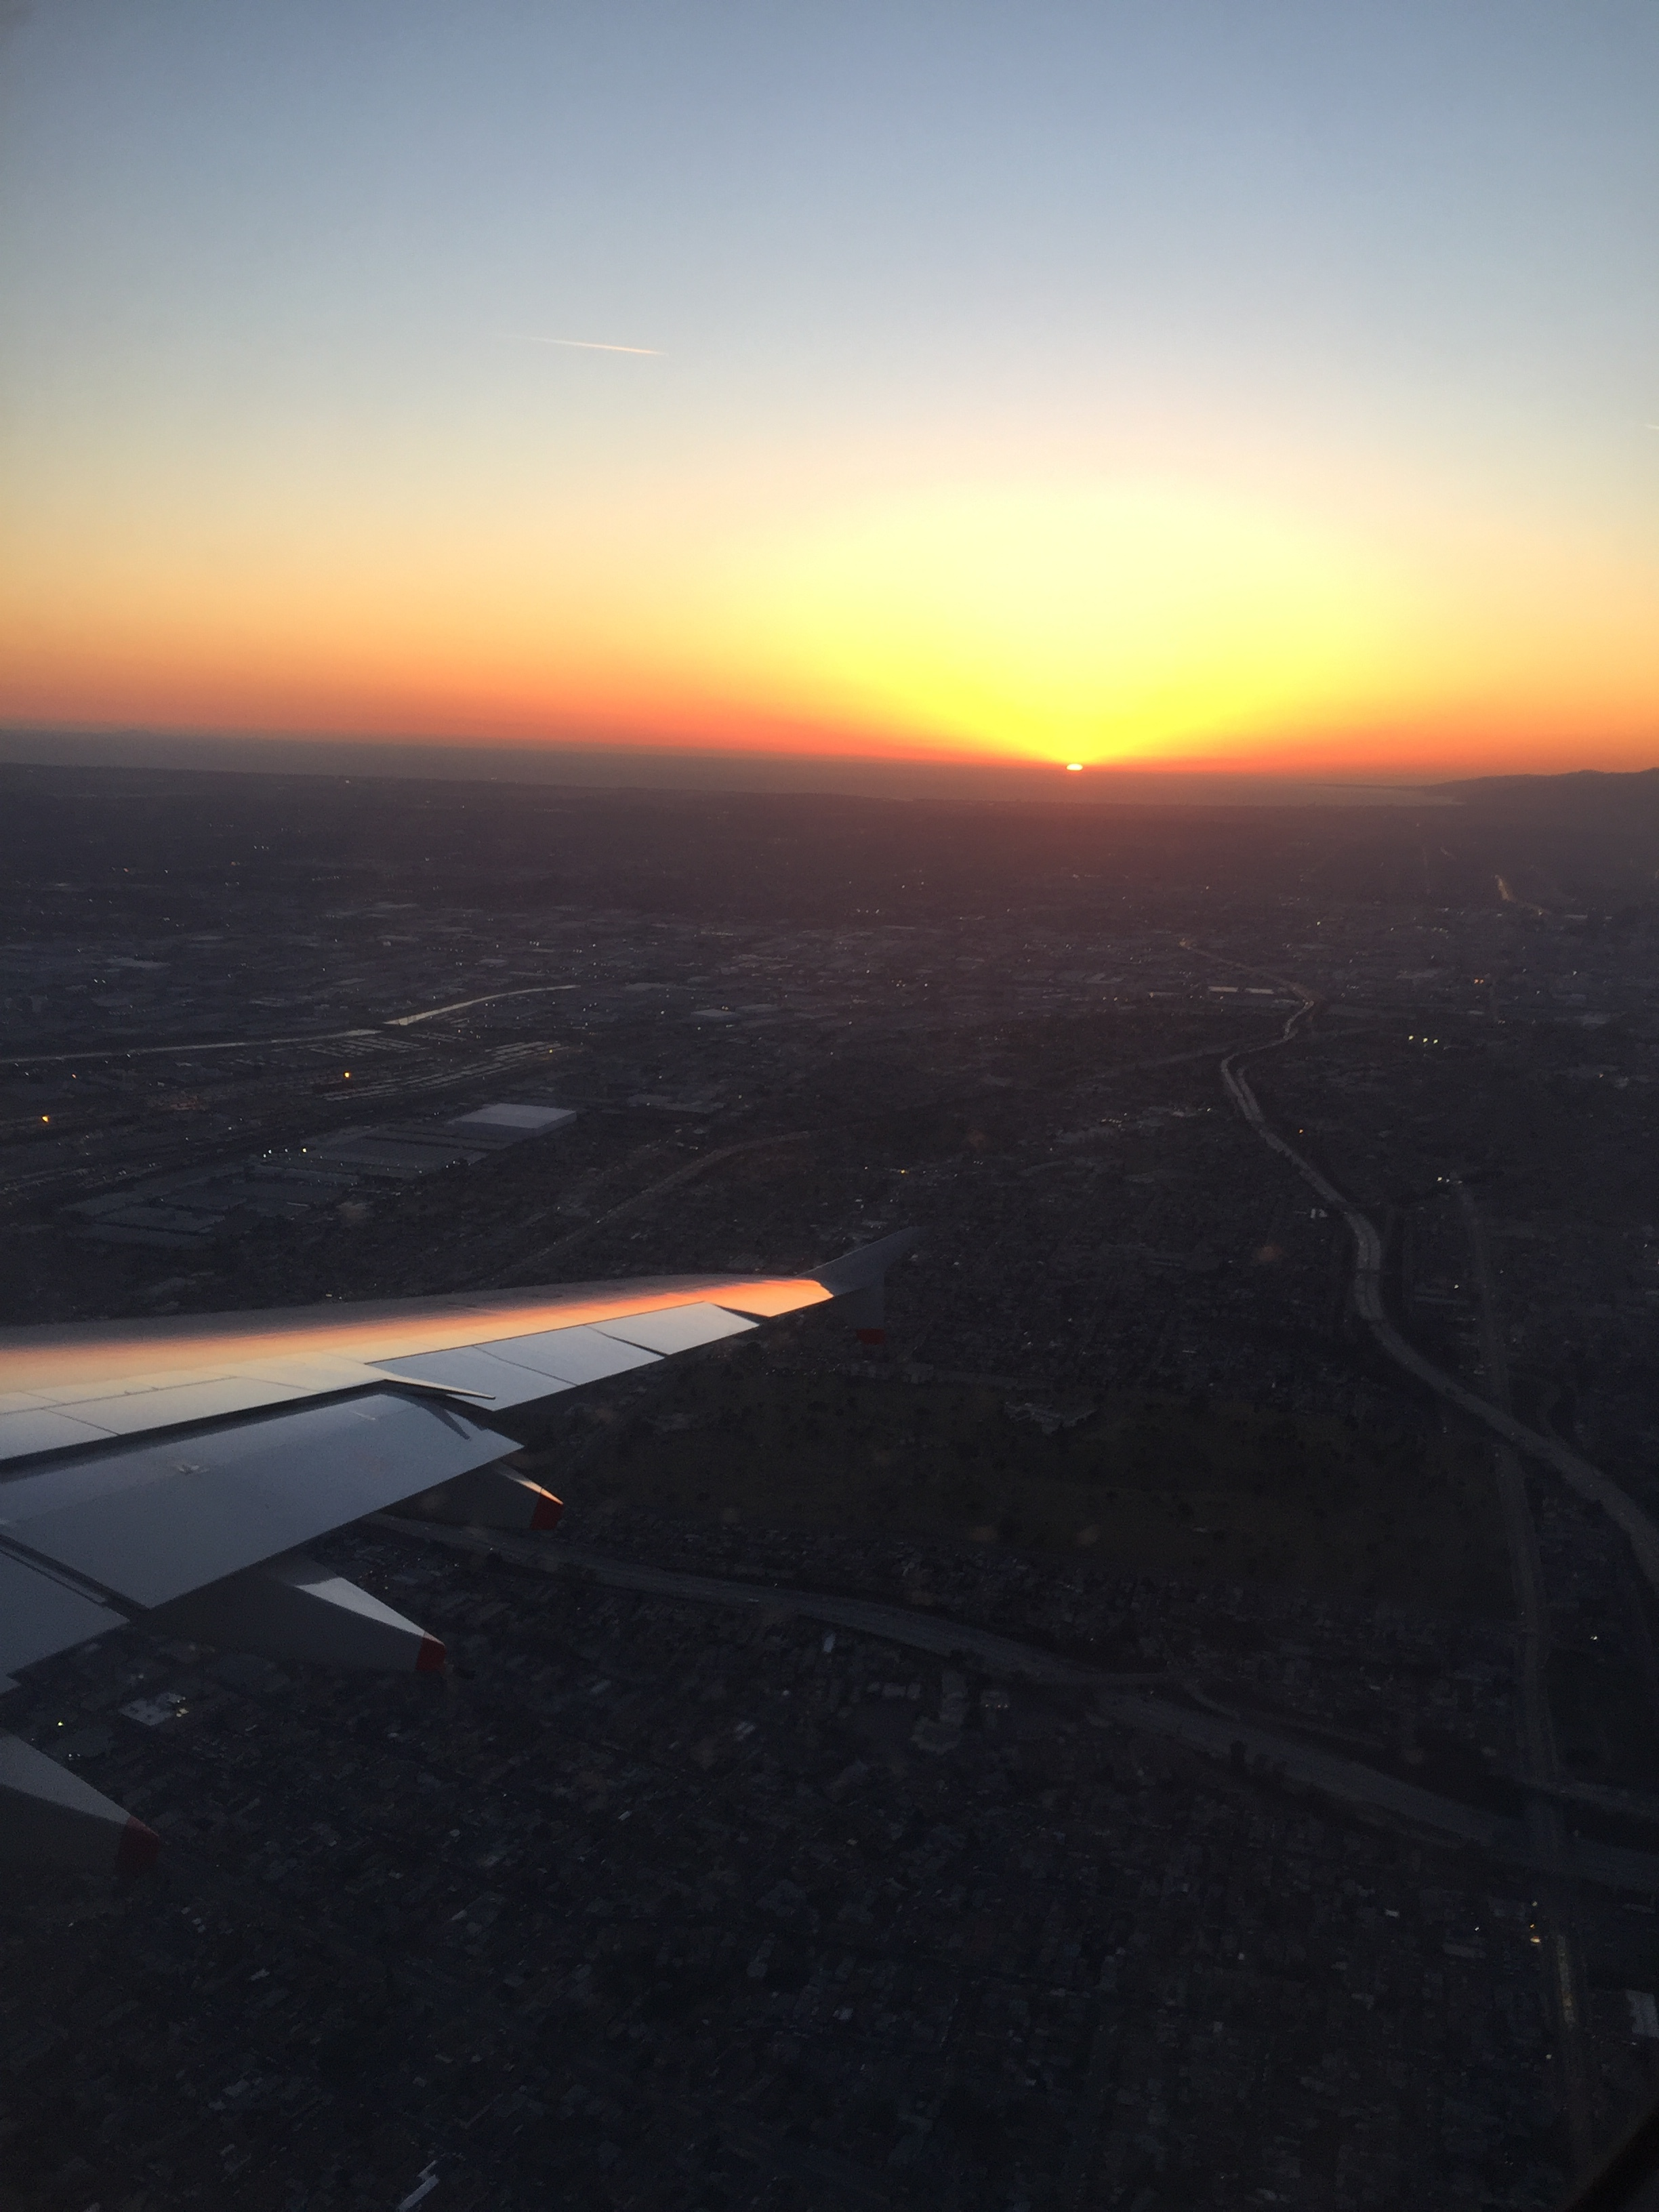 Landing at LAX during the sunset. This was my return flight